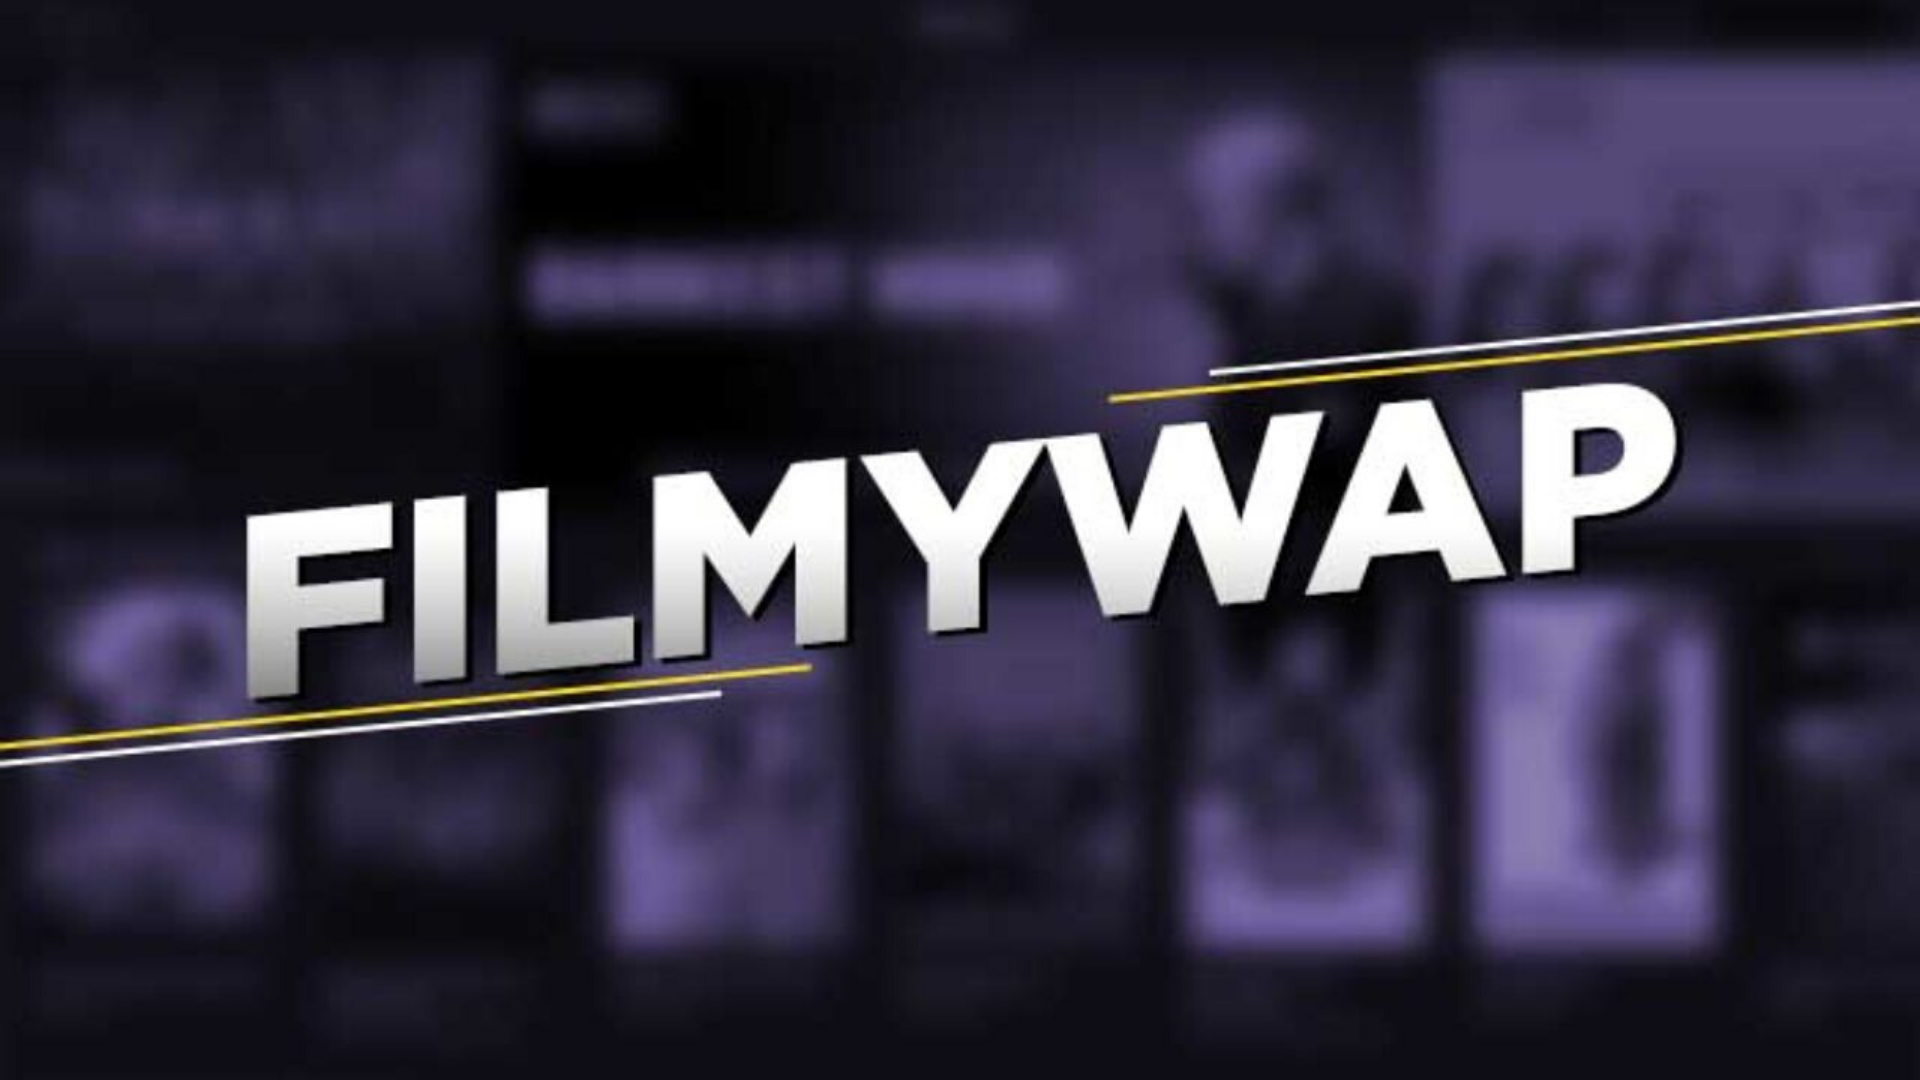 Filmywap to enhance your entertainment